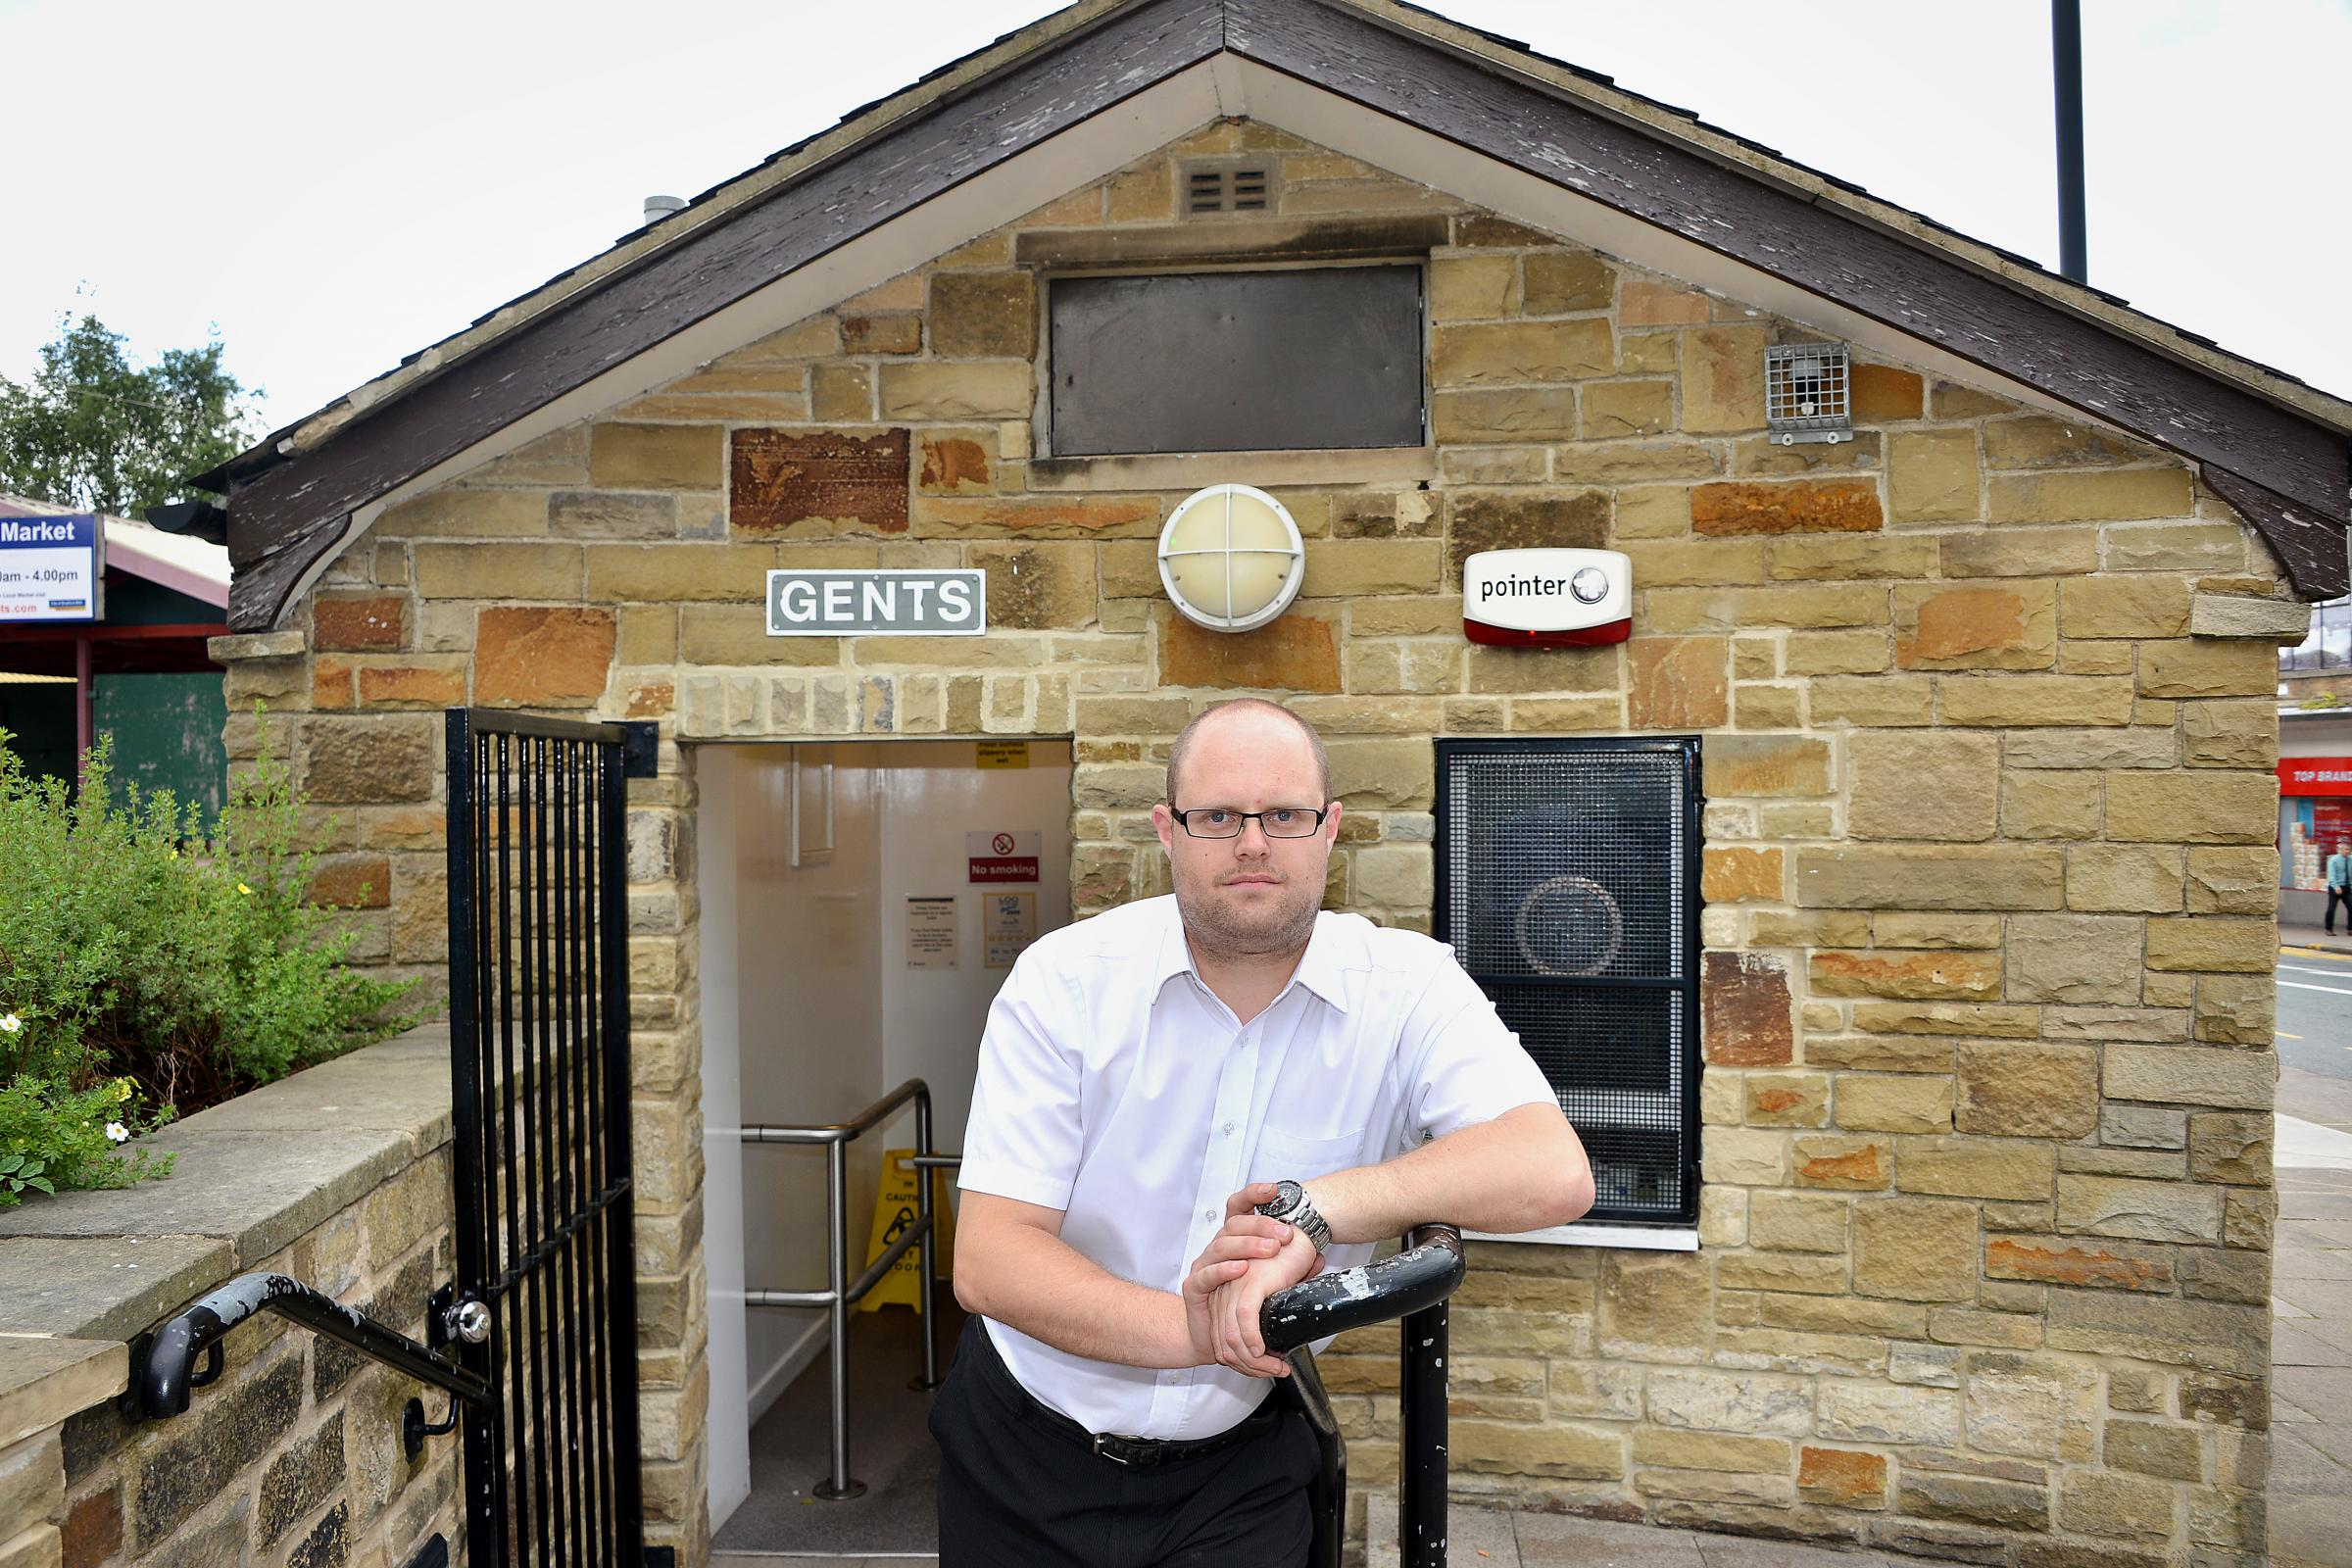 Hope for campaigners in battle to save public toilets in Bingley, Shipley and St Ives